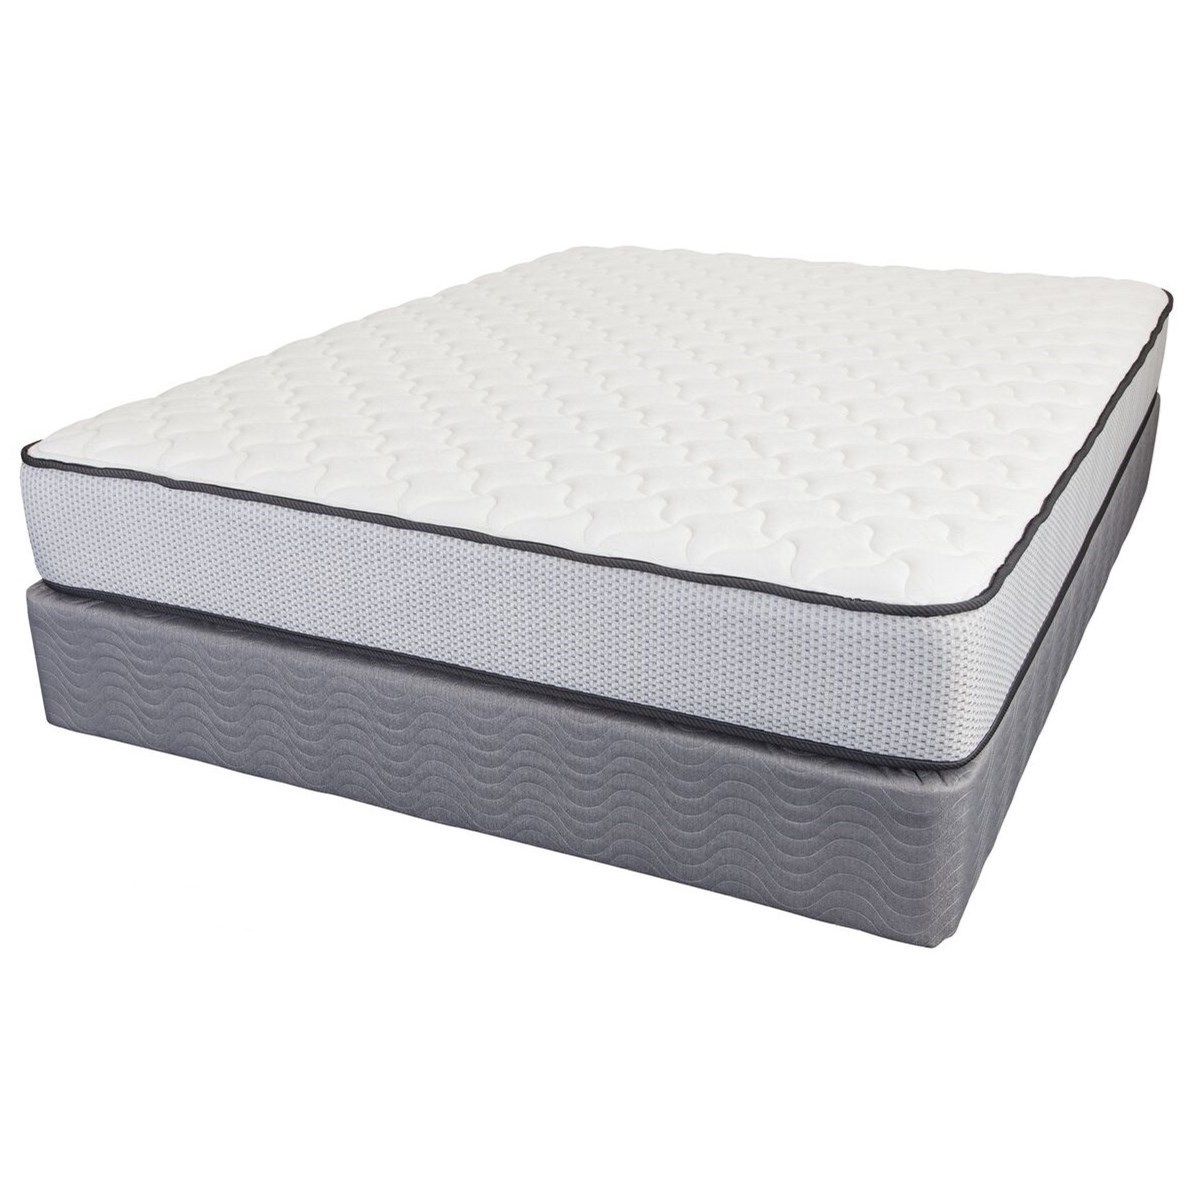 Firm King Size Mattress Image Of Great King Size Memory Foam Mattress 7 Simmons Beautyrest